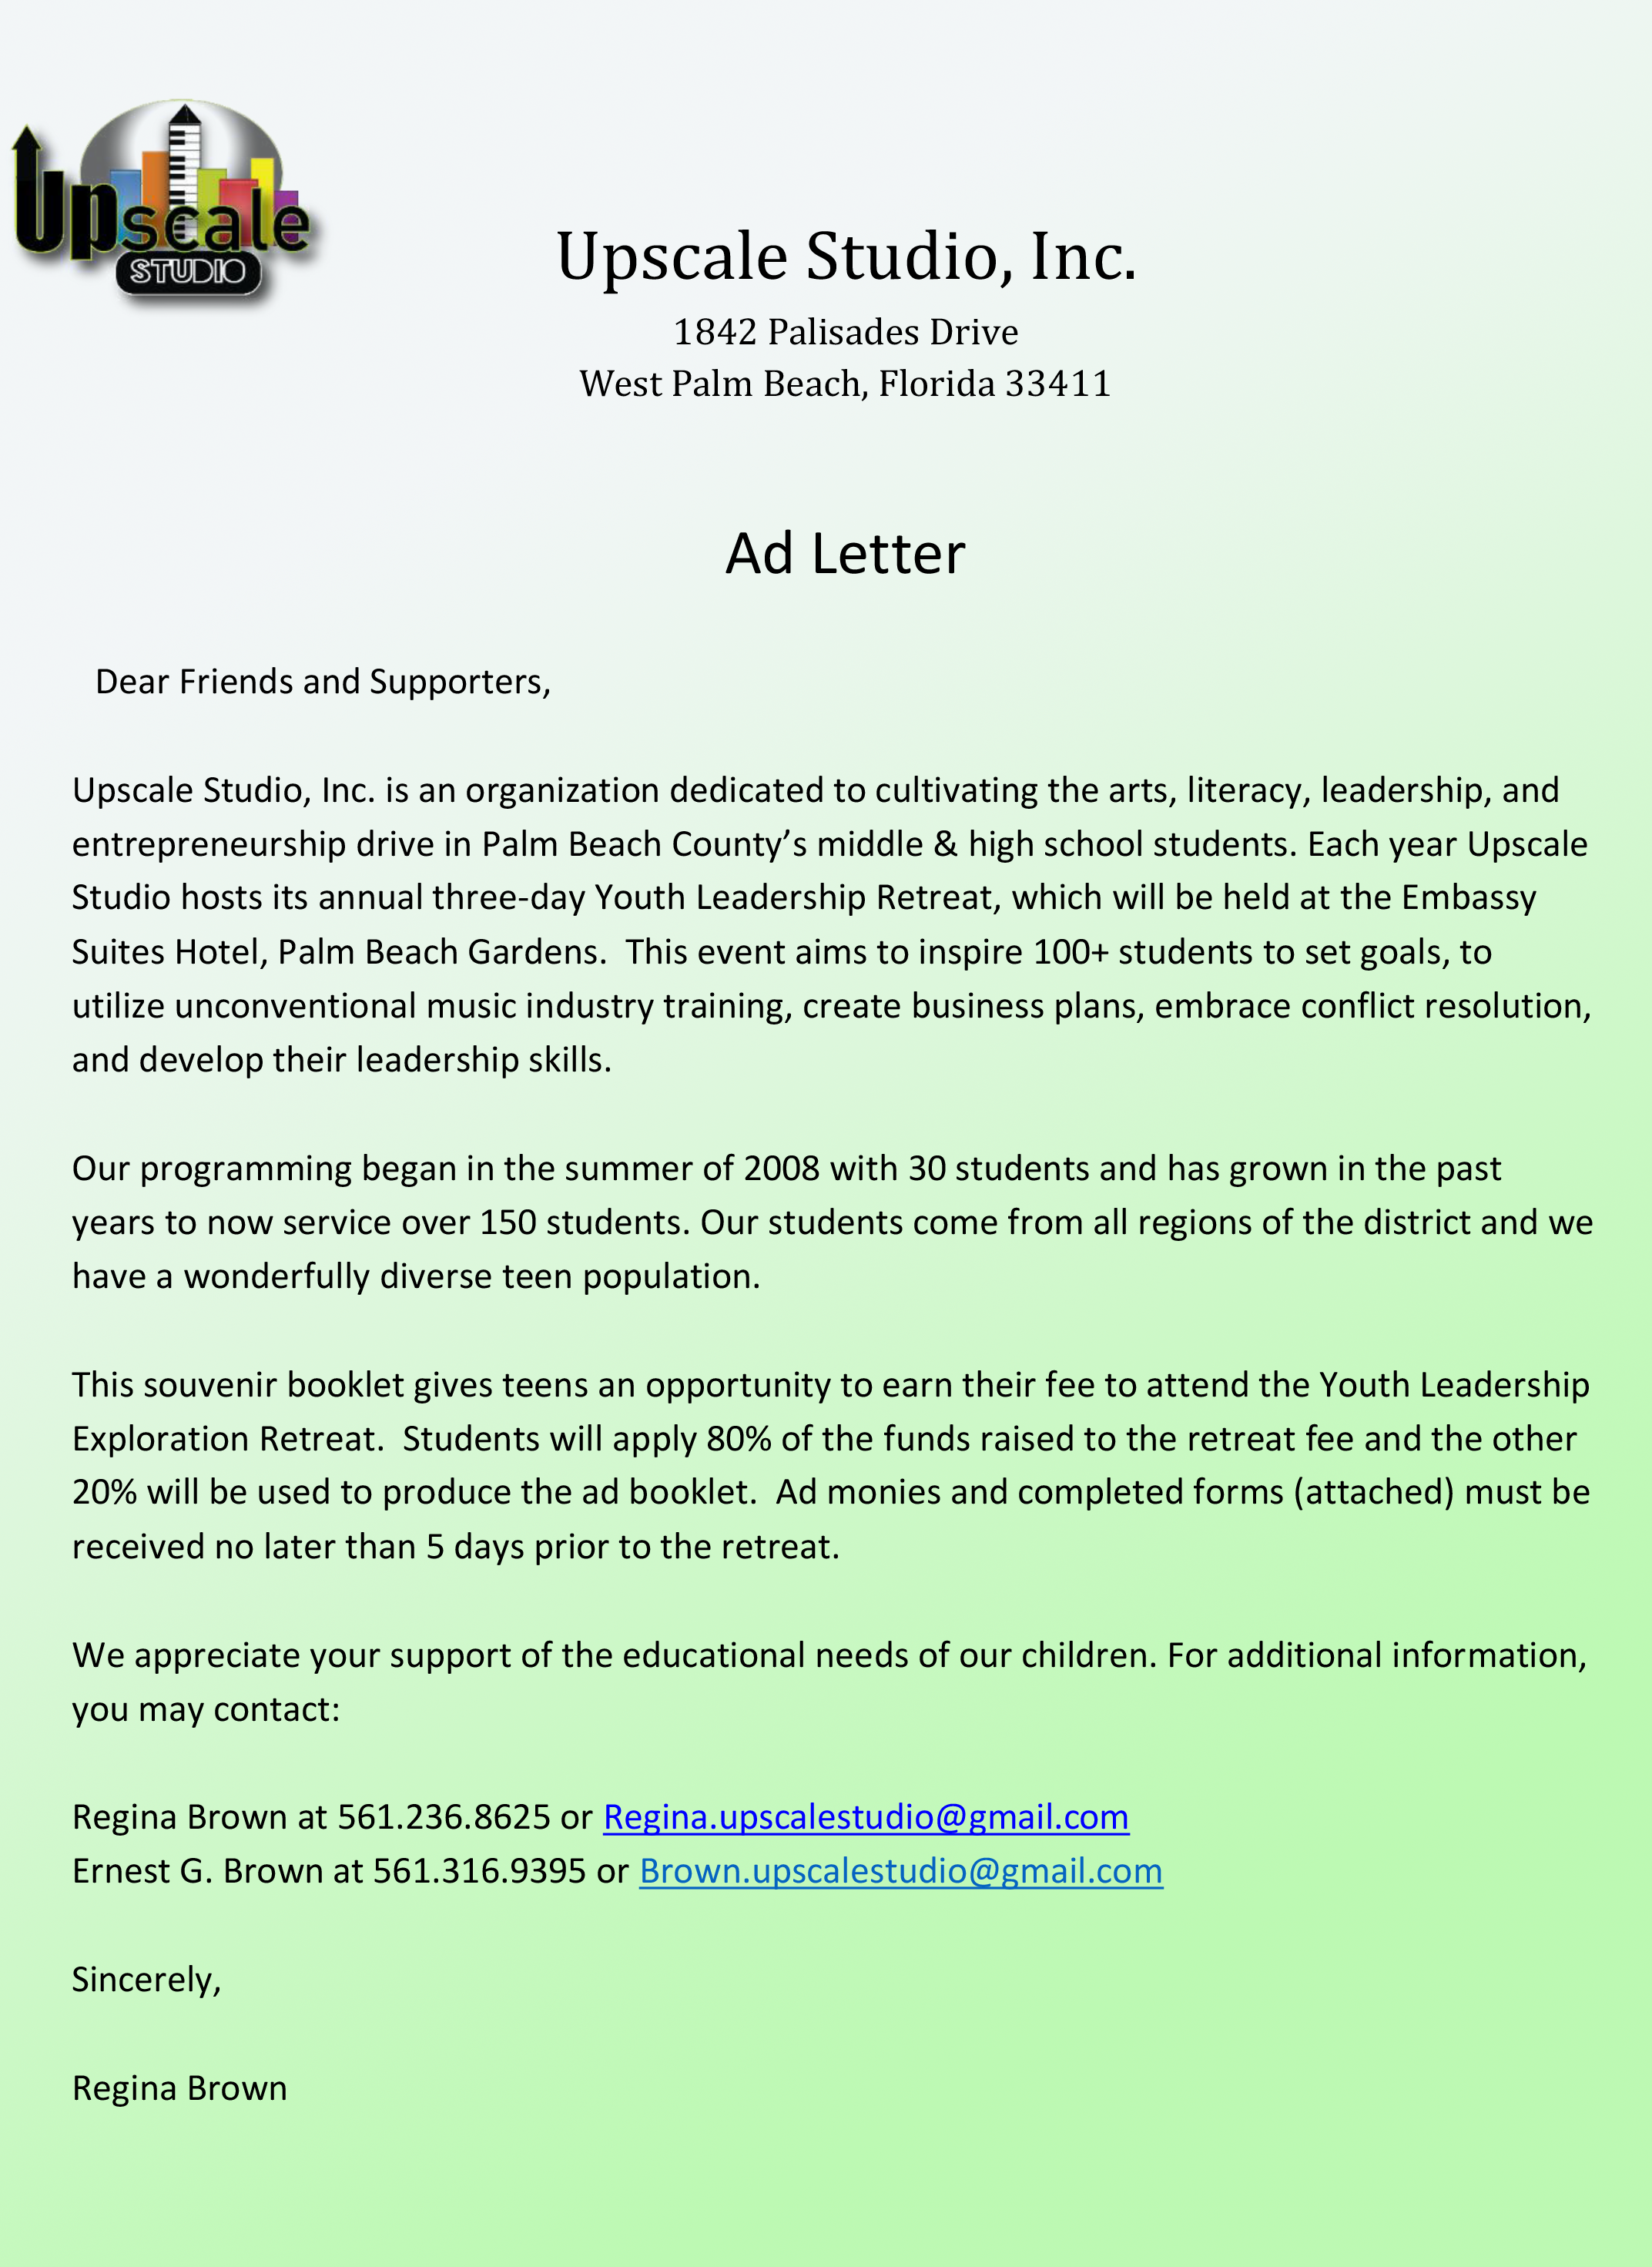 Youth Leadership Exploration Retreat Advertisement Letter Form (1)